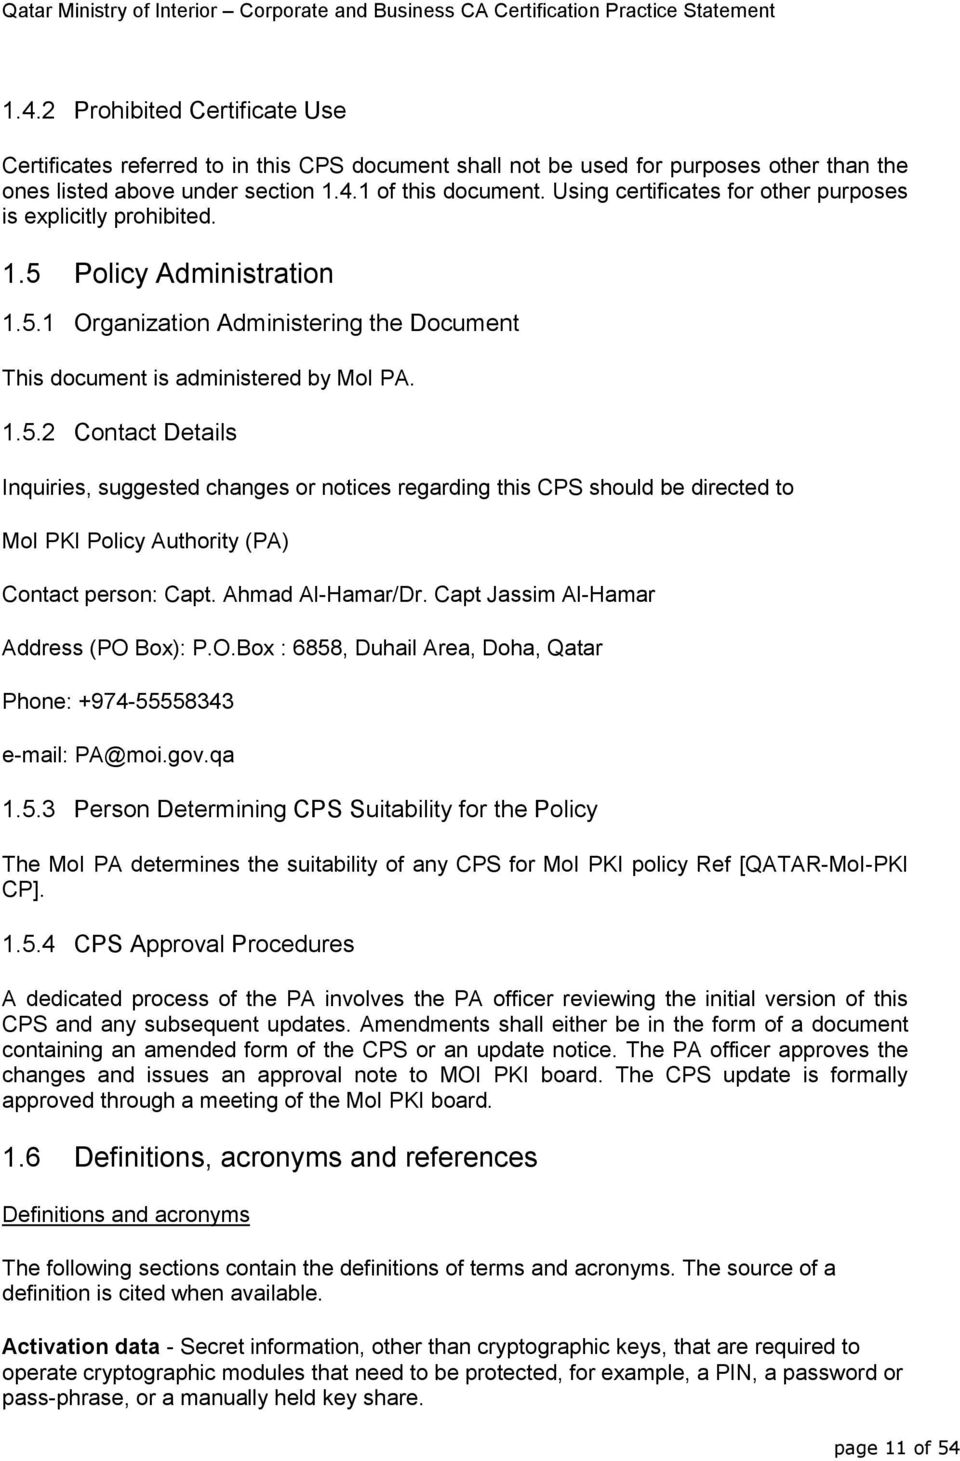 Policy Administration 1.5.1 Organization Administering the Document This document is administered by MoI PA. 1.5.2 Contact Details Inquiries, suggested changes or notices regarding this CPS should be directed to MoI PKI Policy Authority (PA) Contact person: Capt.